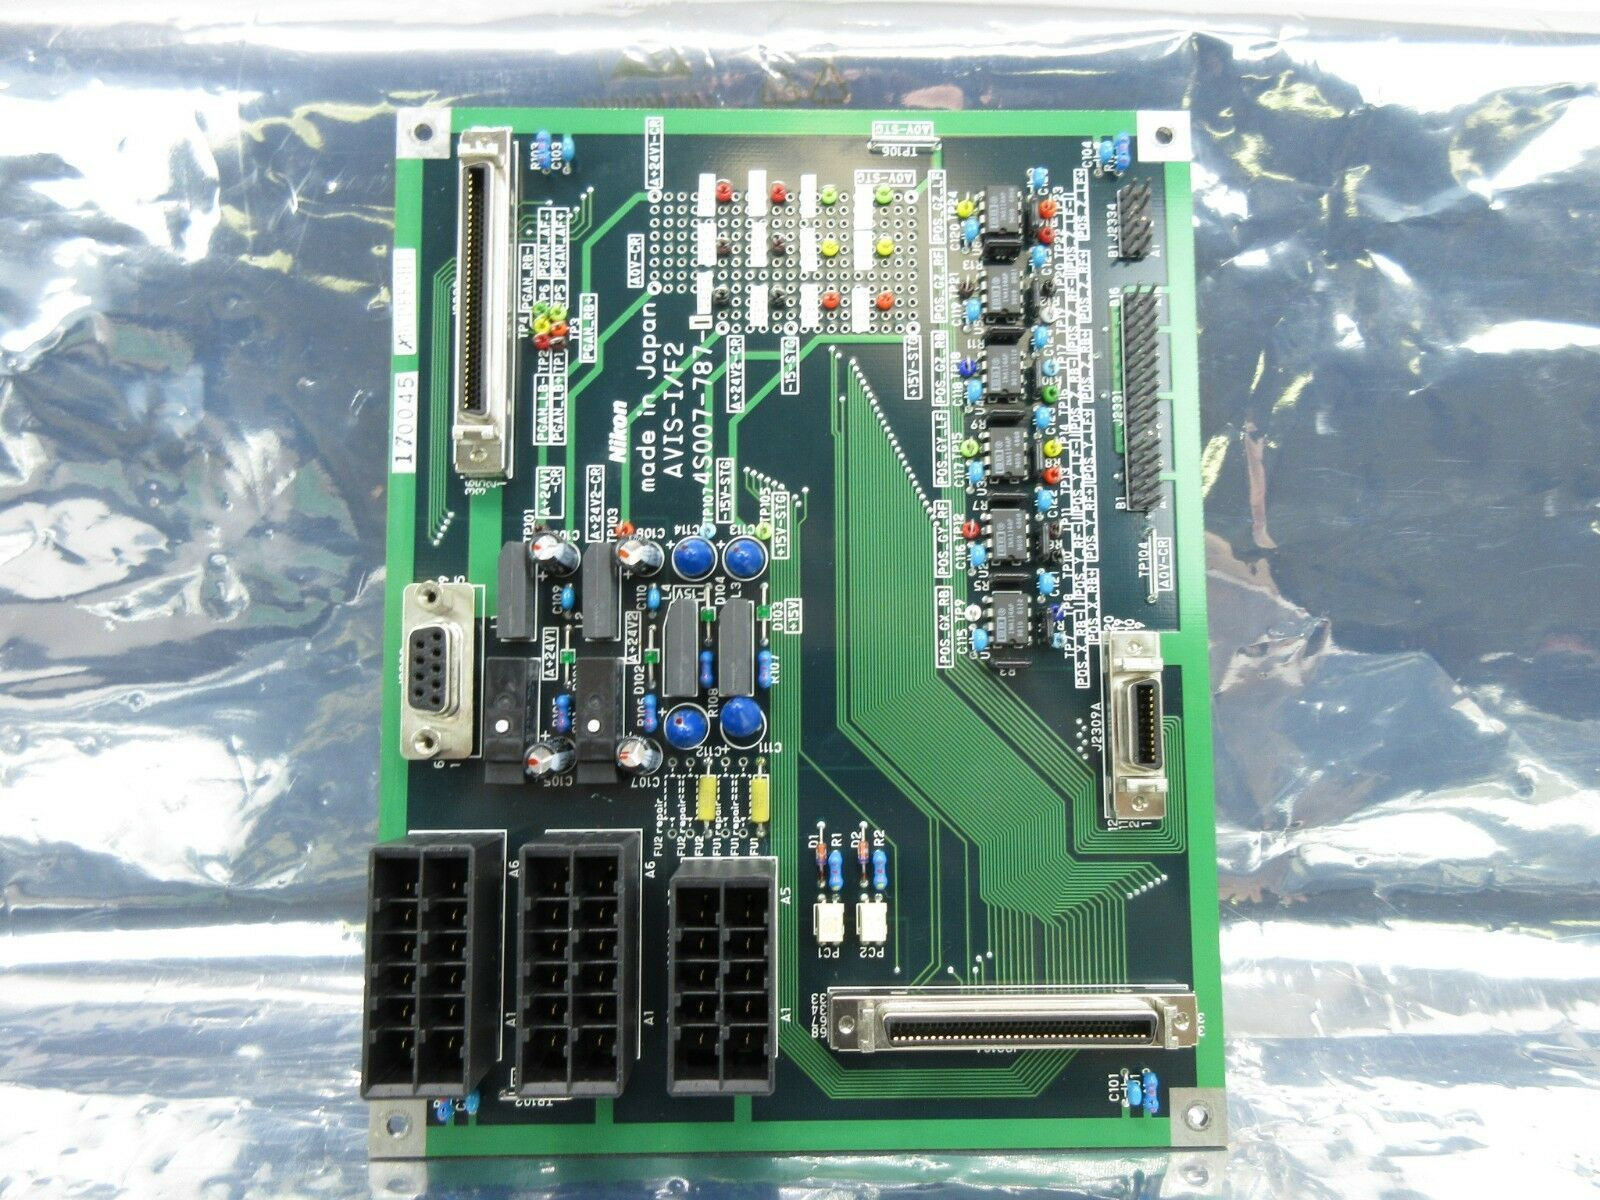 Nikon 4S007-787-1 Interface Board PCB AVIS-I/F2 NSR-S202A Used Working